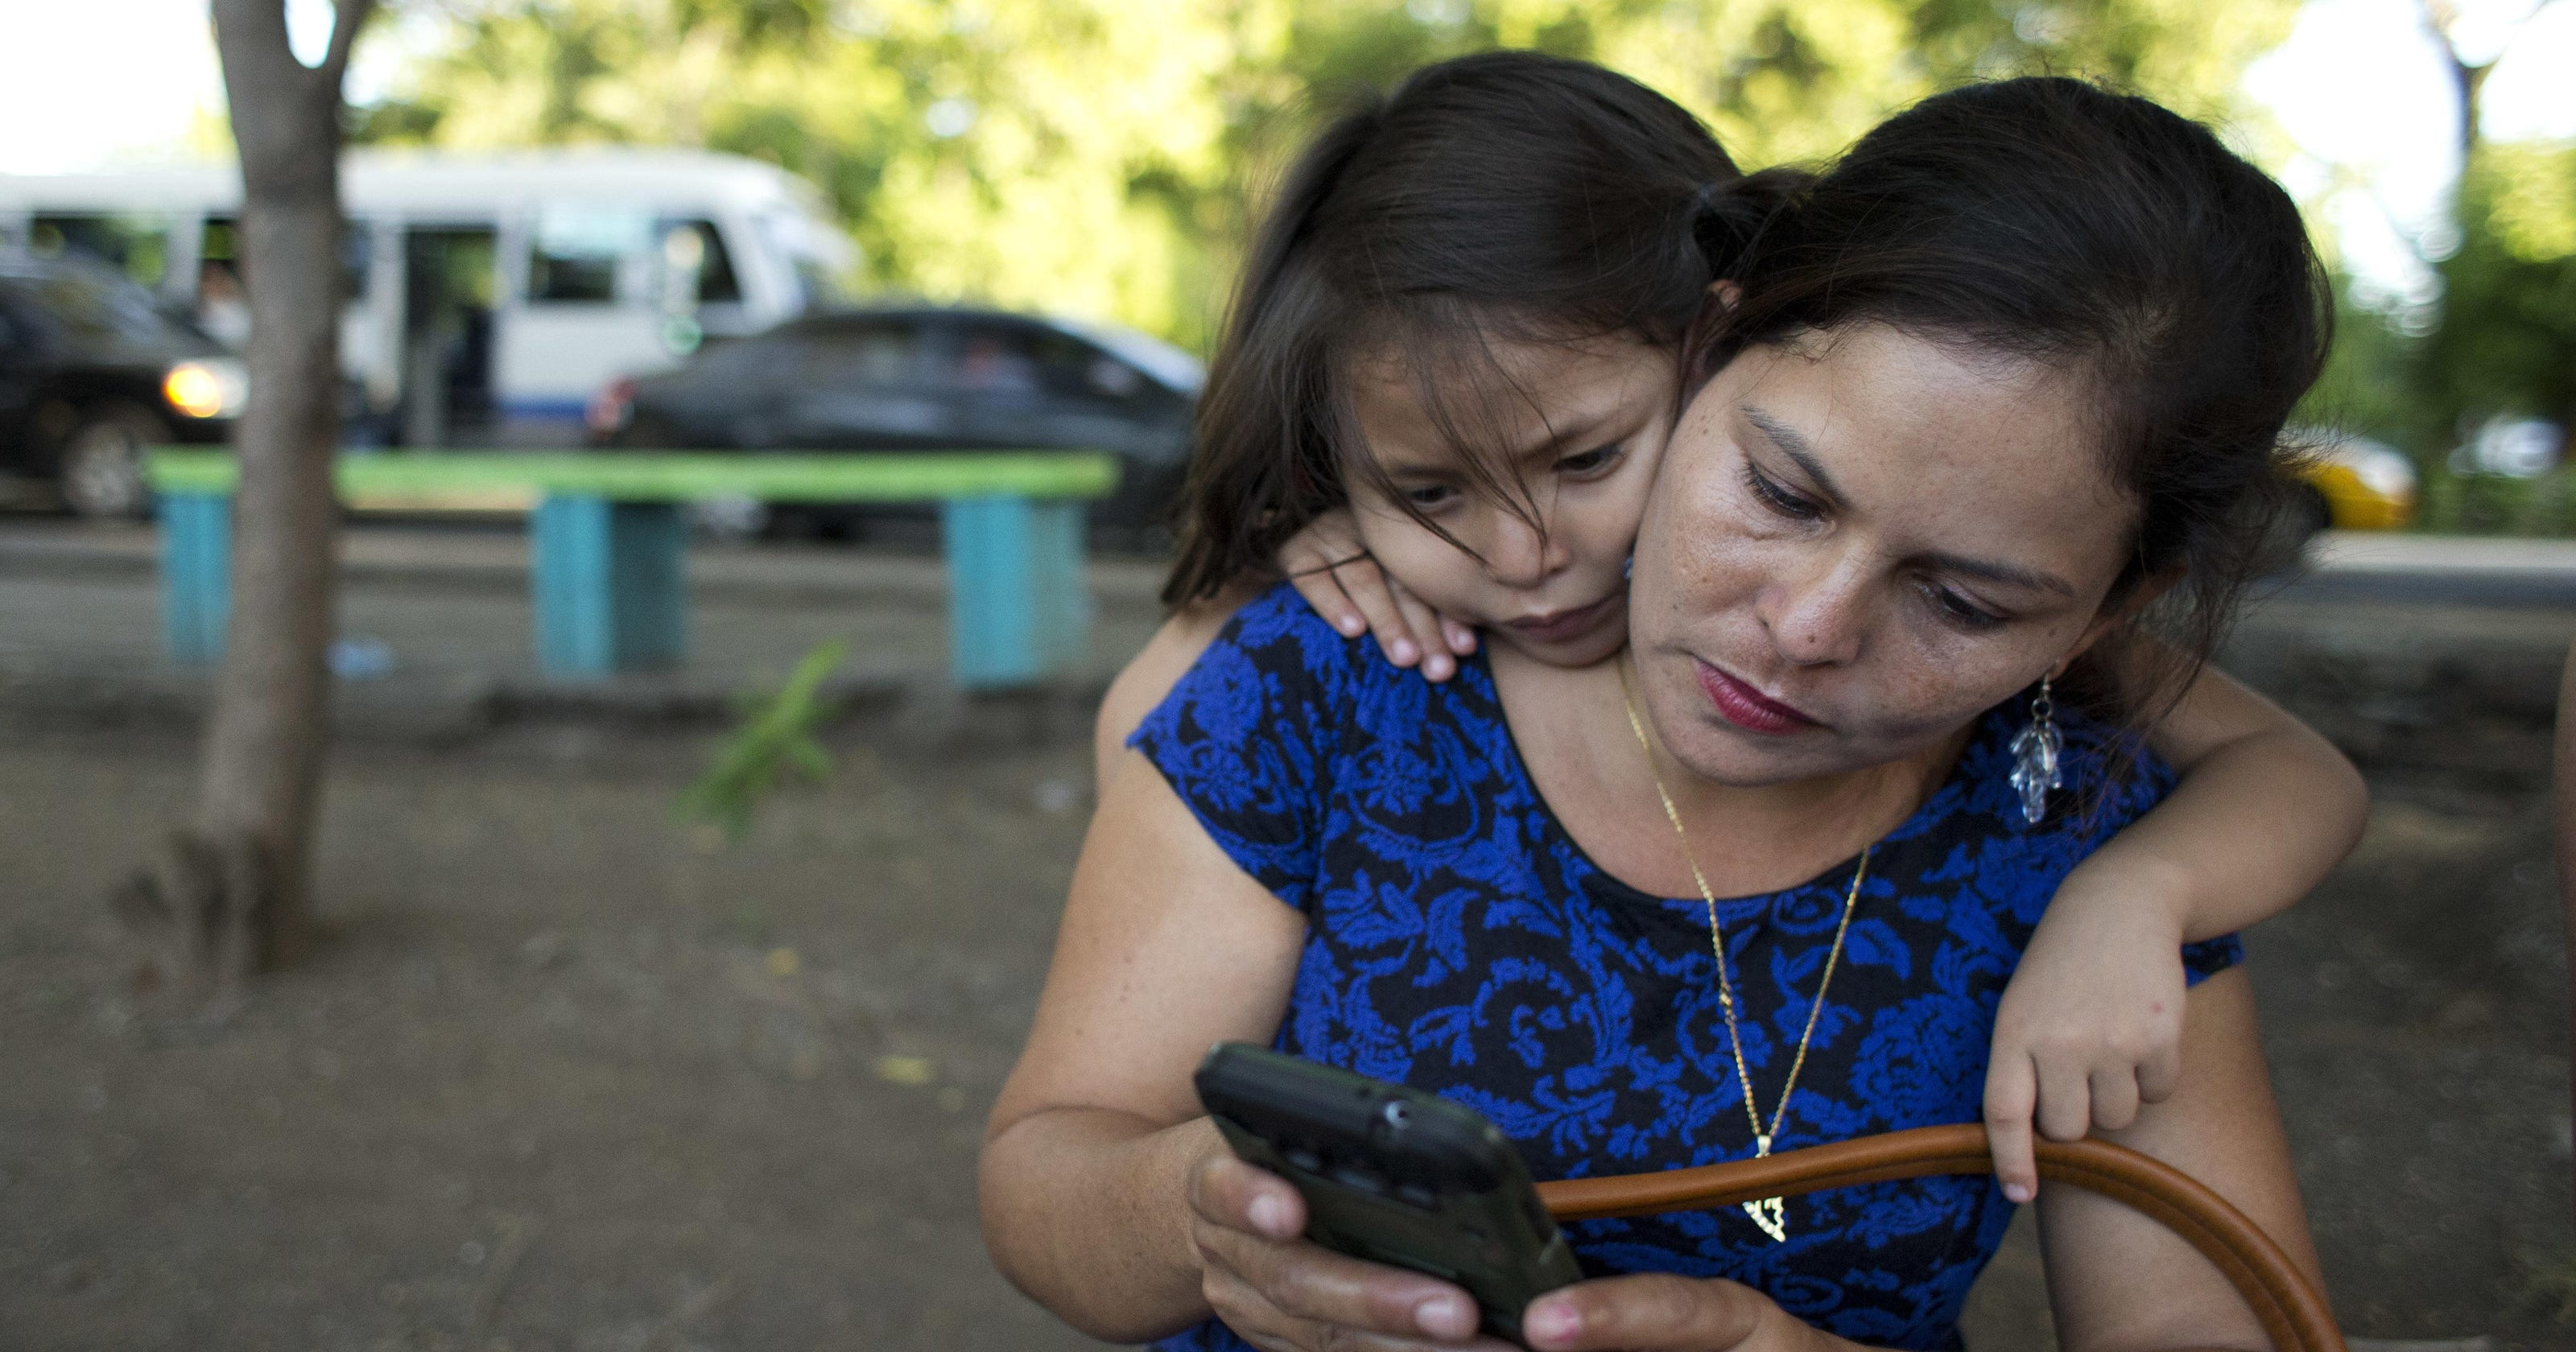 Deported parents may lose kids to adoption